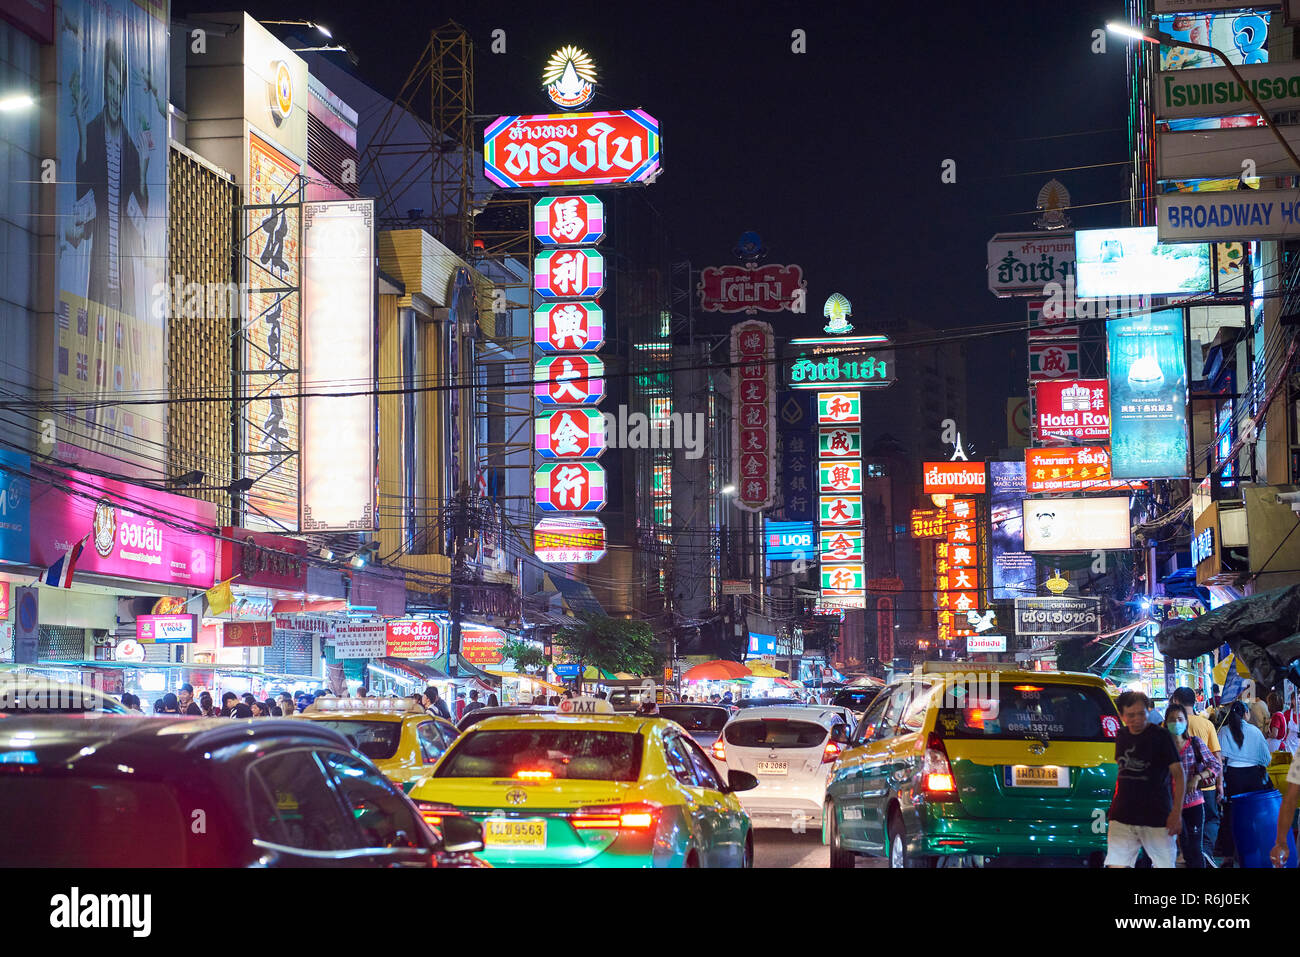 Night shot of Chinatown district in Bangkok, Thailand, with heavy traffic and neon signs. Stock Photo